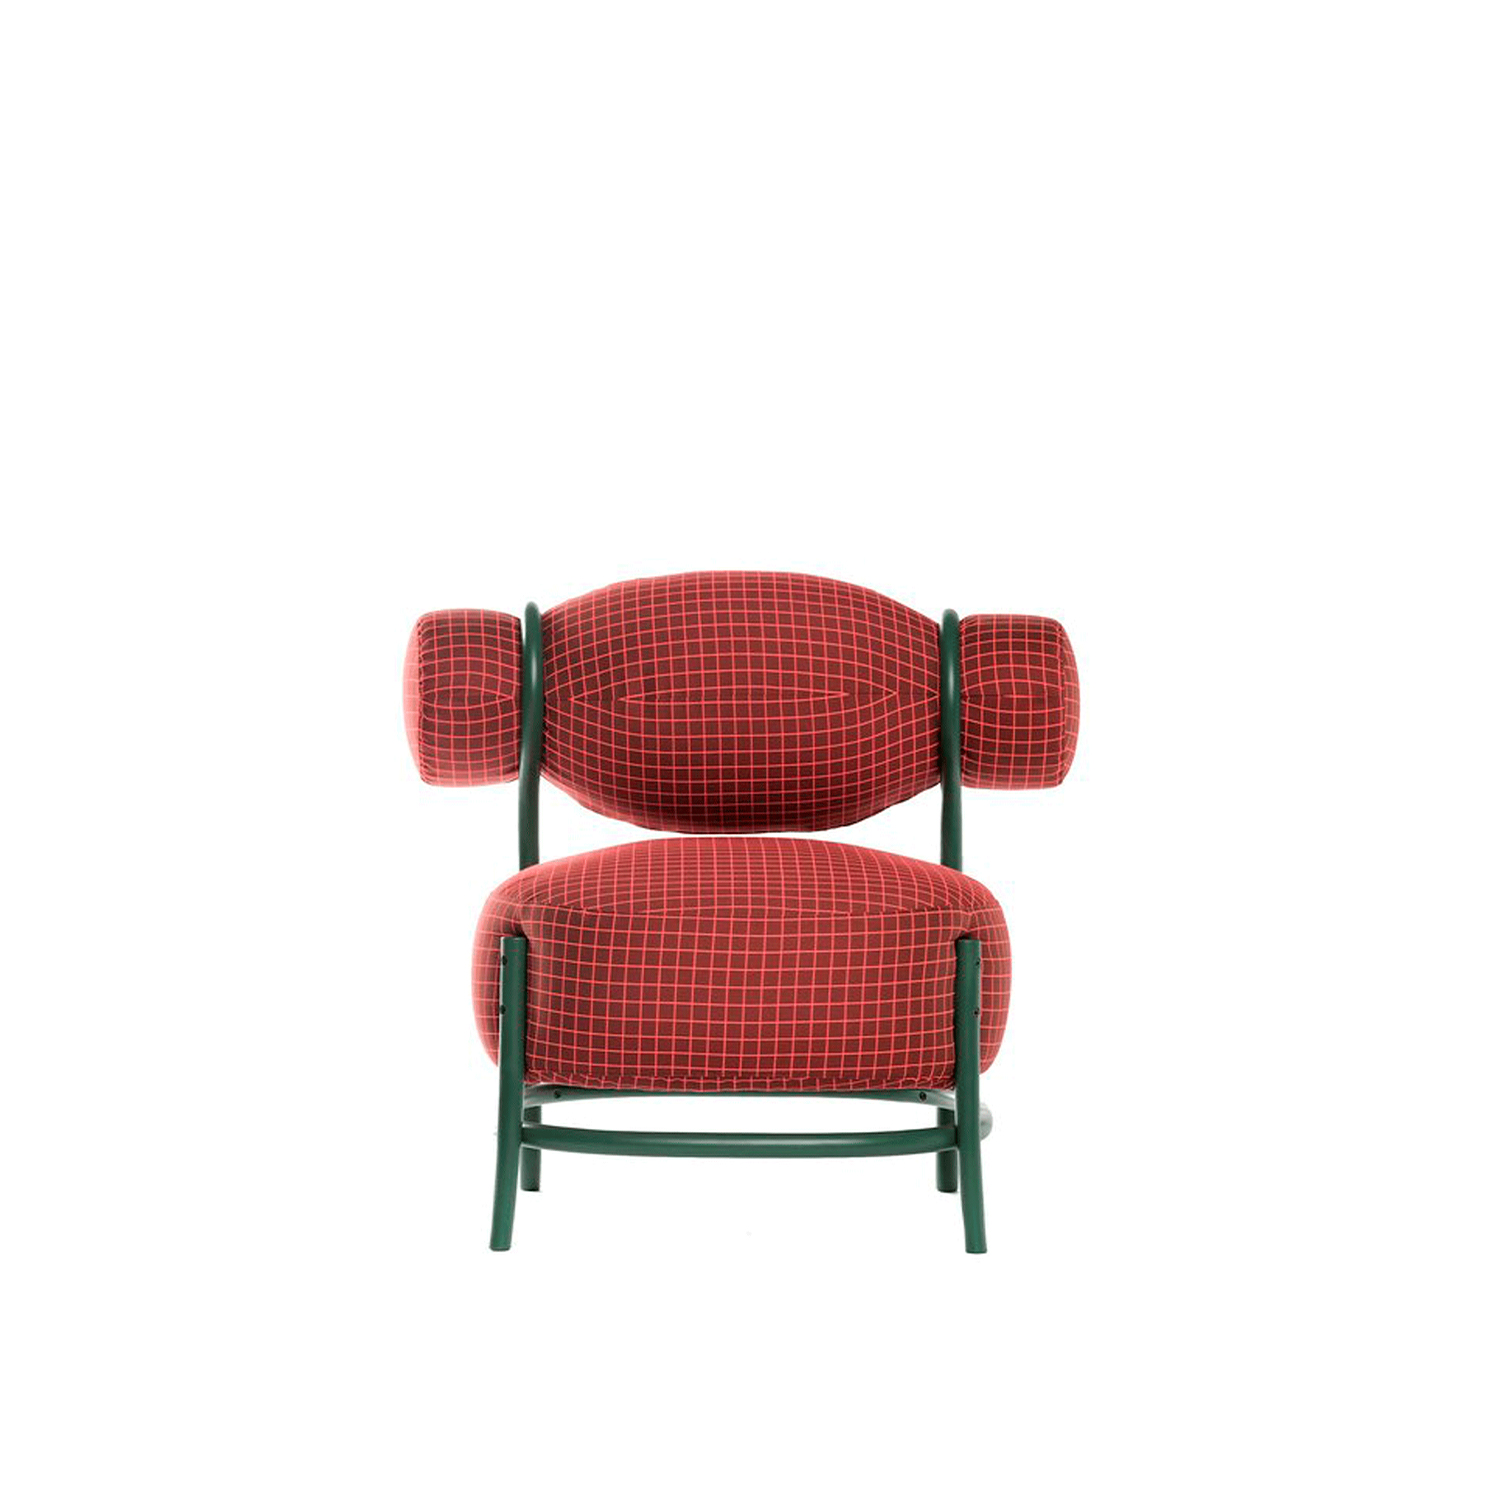 Chignon Lounge Chair - This stunning accent chair is modern and playful with elegant lightness in the proportions and a bold chromatic choice. The thick seat and backrest are covered with a vivid red fabric and enclosed in a wooden structure with details in curled beechwood, a trademark of Viennese-style furniture. The result is a feminine and refined silhouette that poetically evokes the shape of a hairdo. An elegant piece of timeless allure, this chair is ideal for both residential and public places.